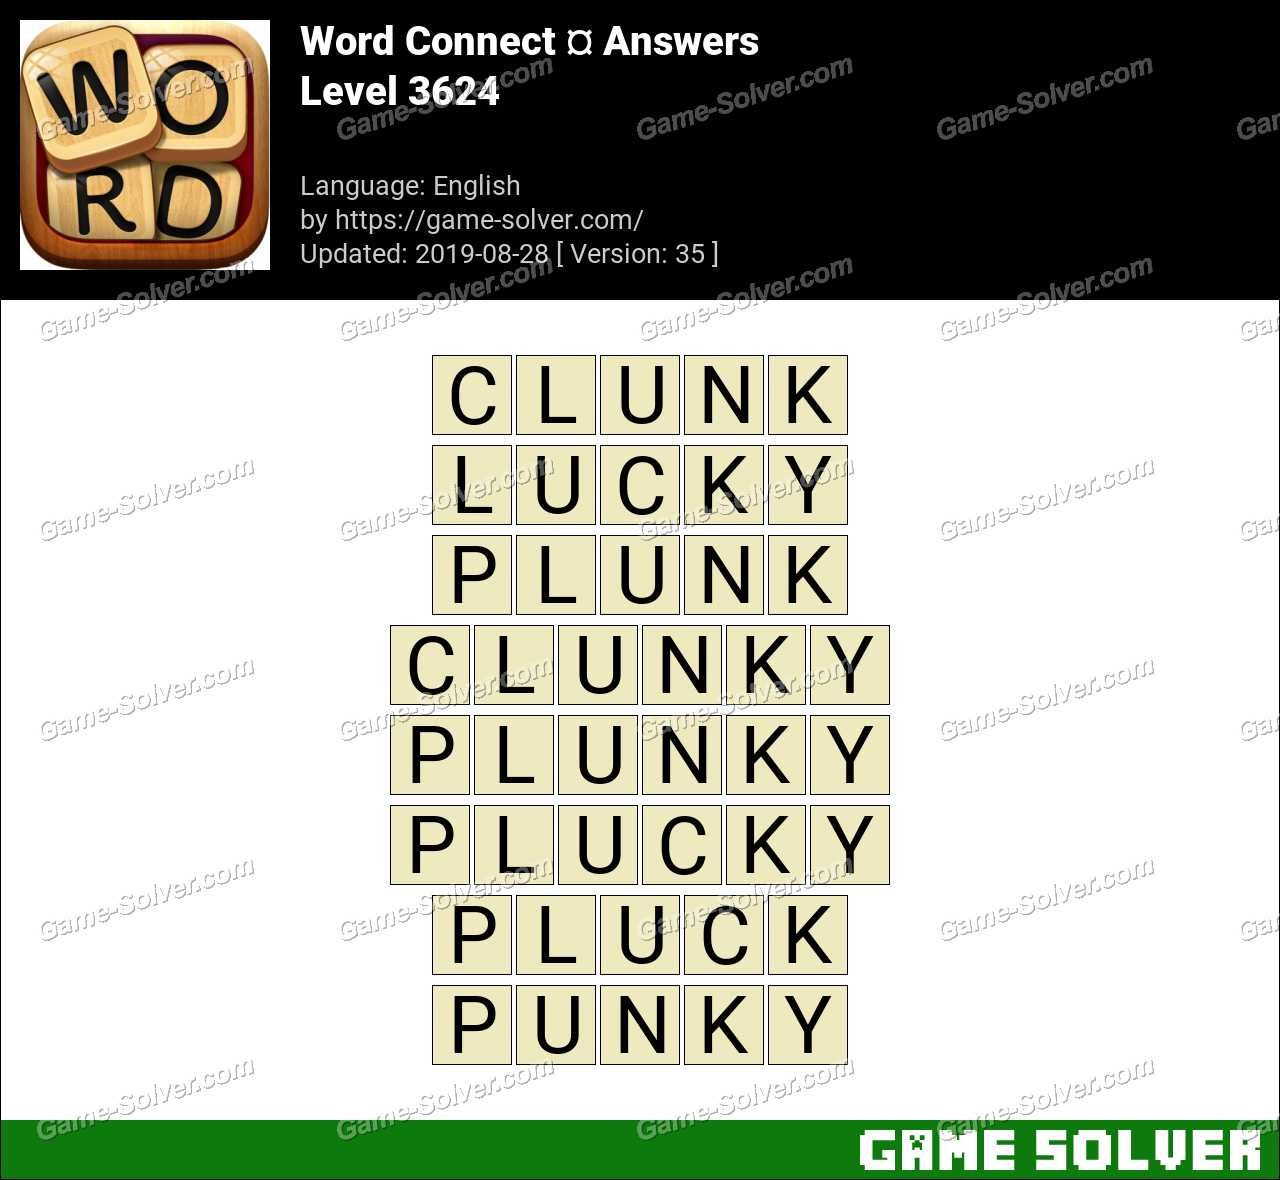 Word Connect Level 3624 Answers